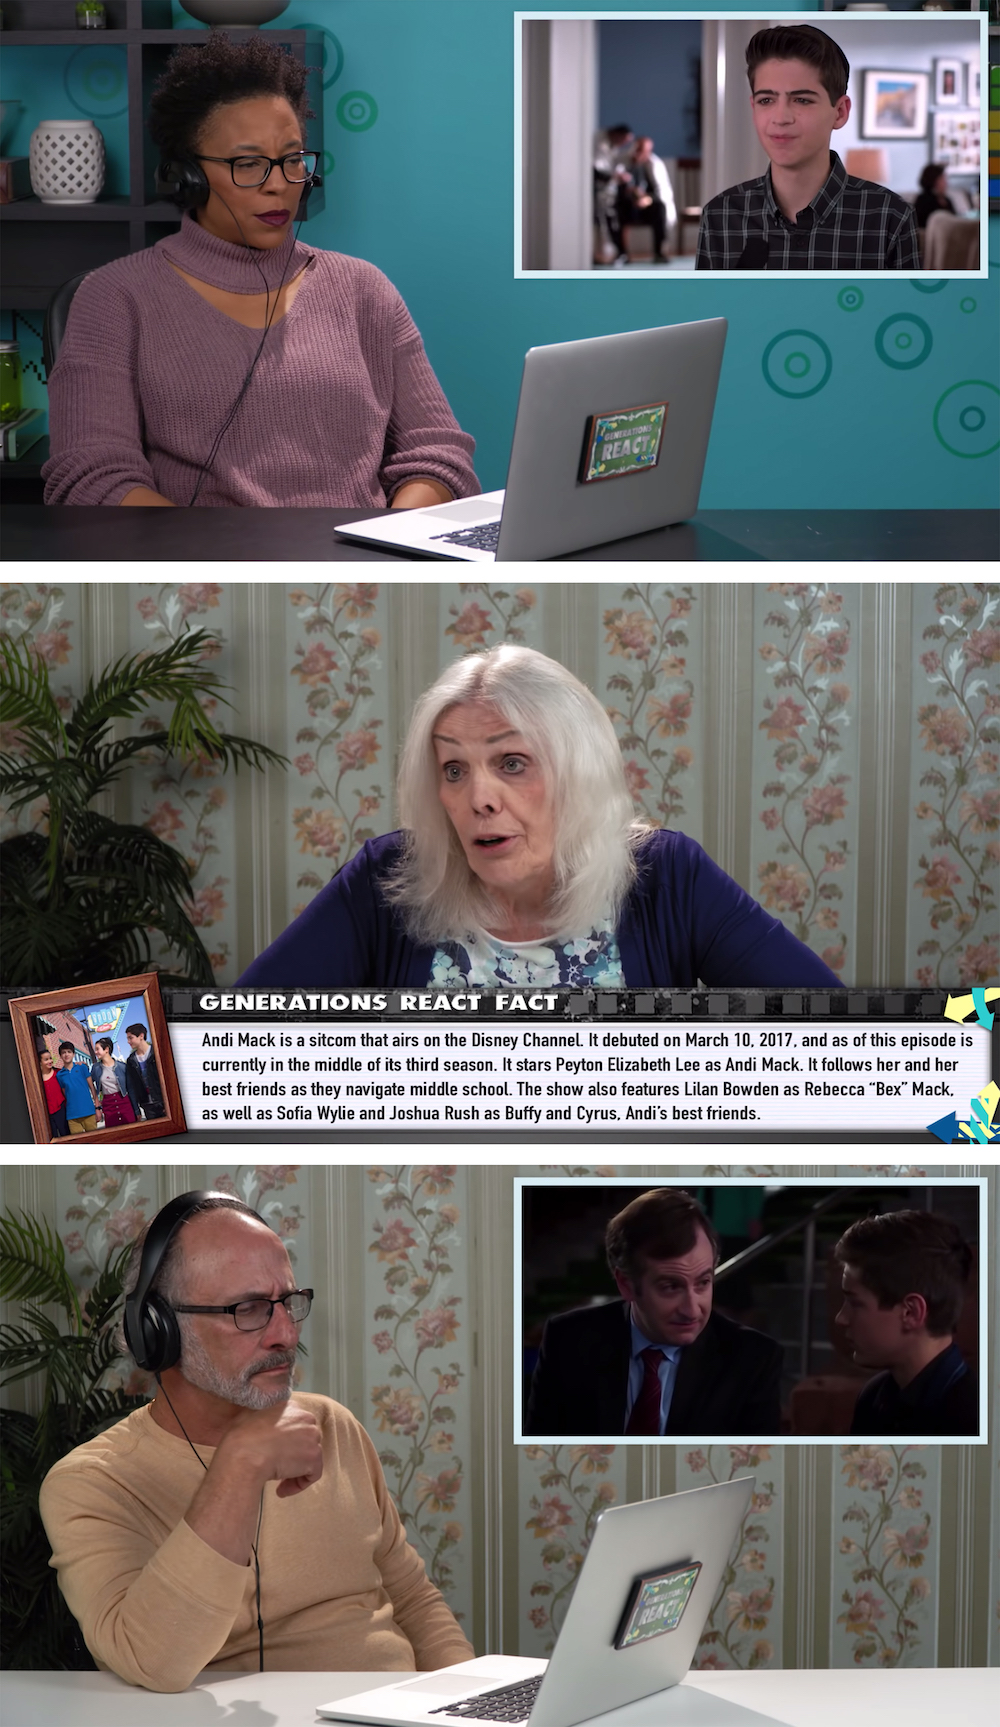 Elders react to Andi Mak